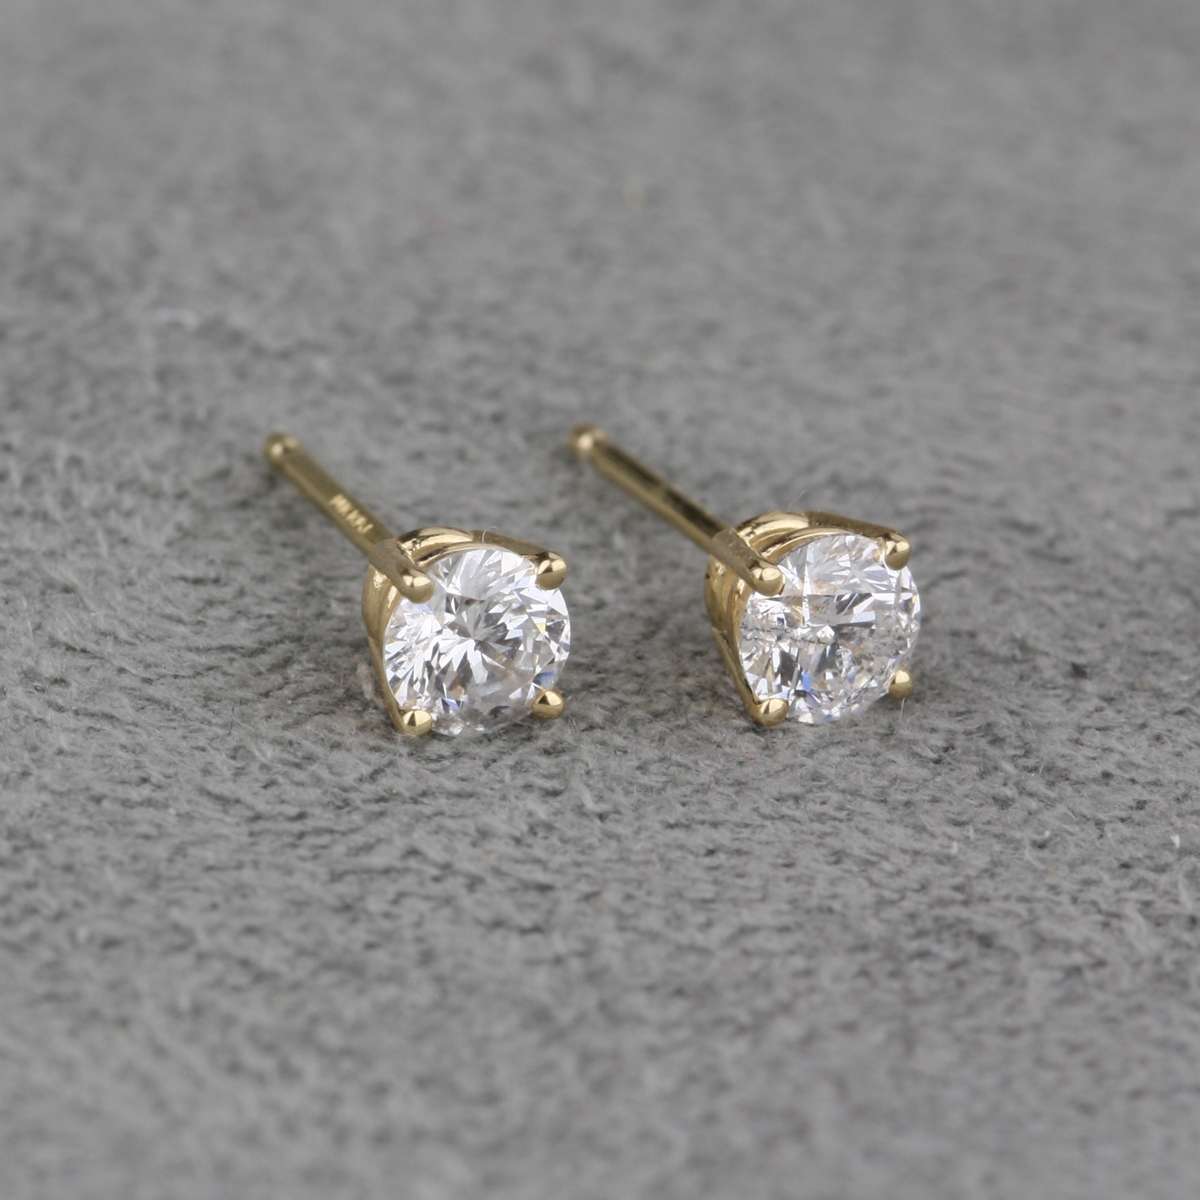 lab jewelry earrings the golden drop carat image hanging en